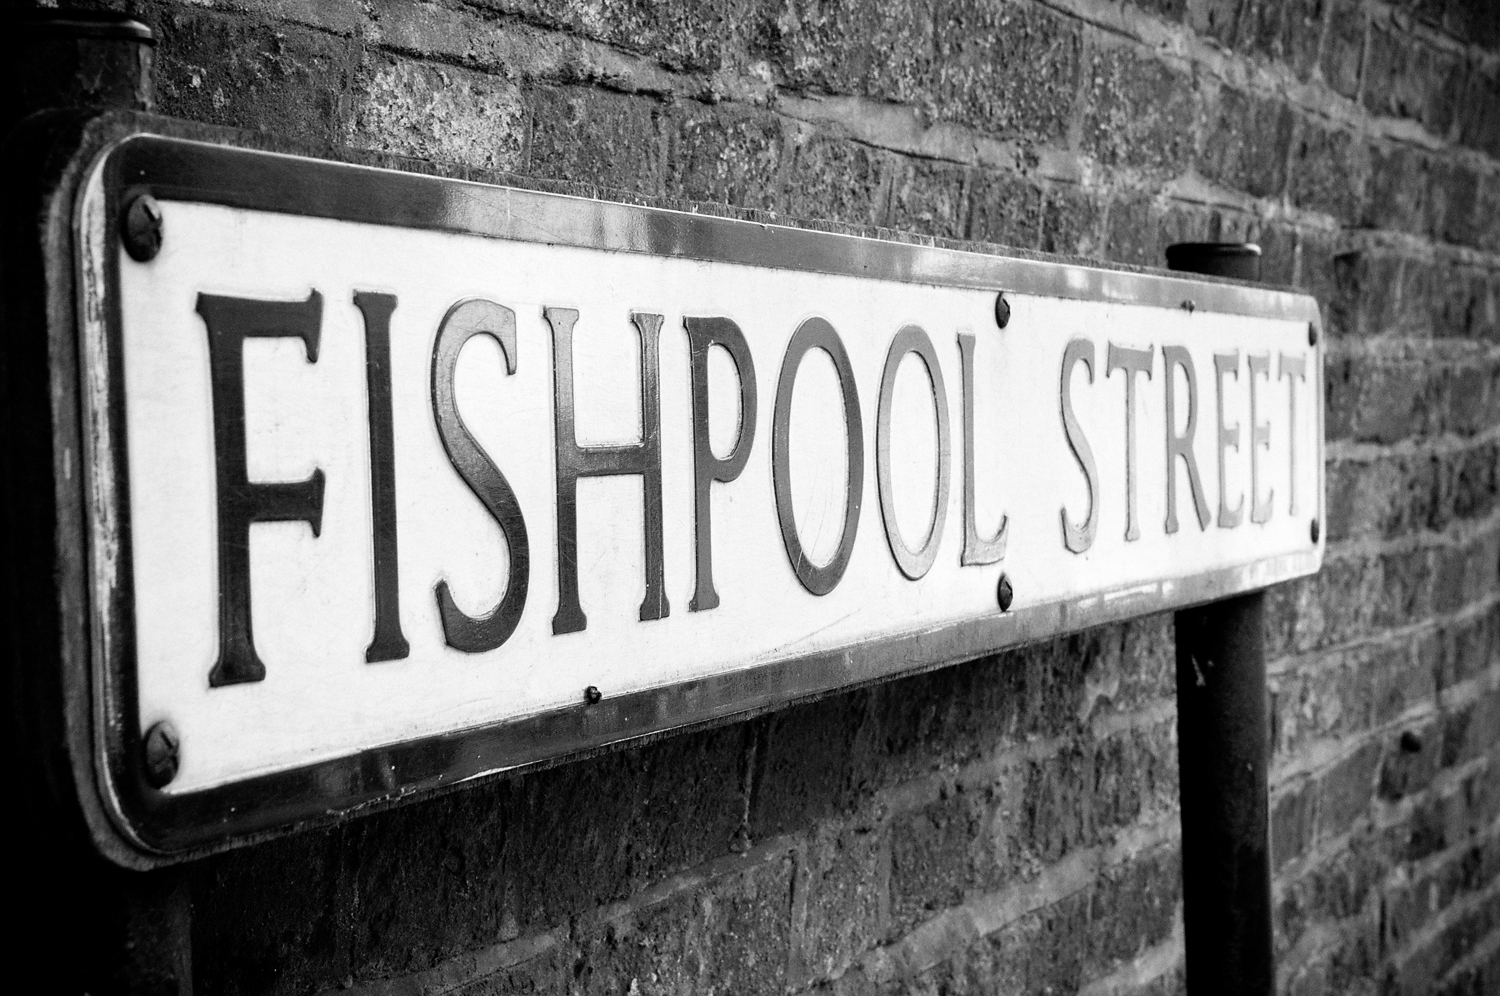 Fish Pool Street in St Albans